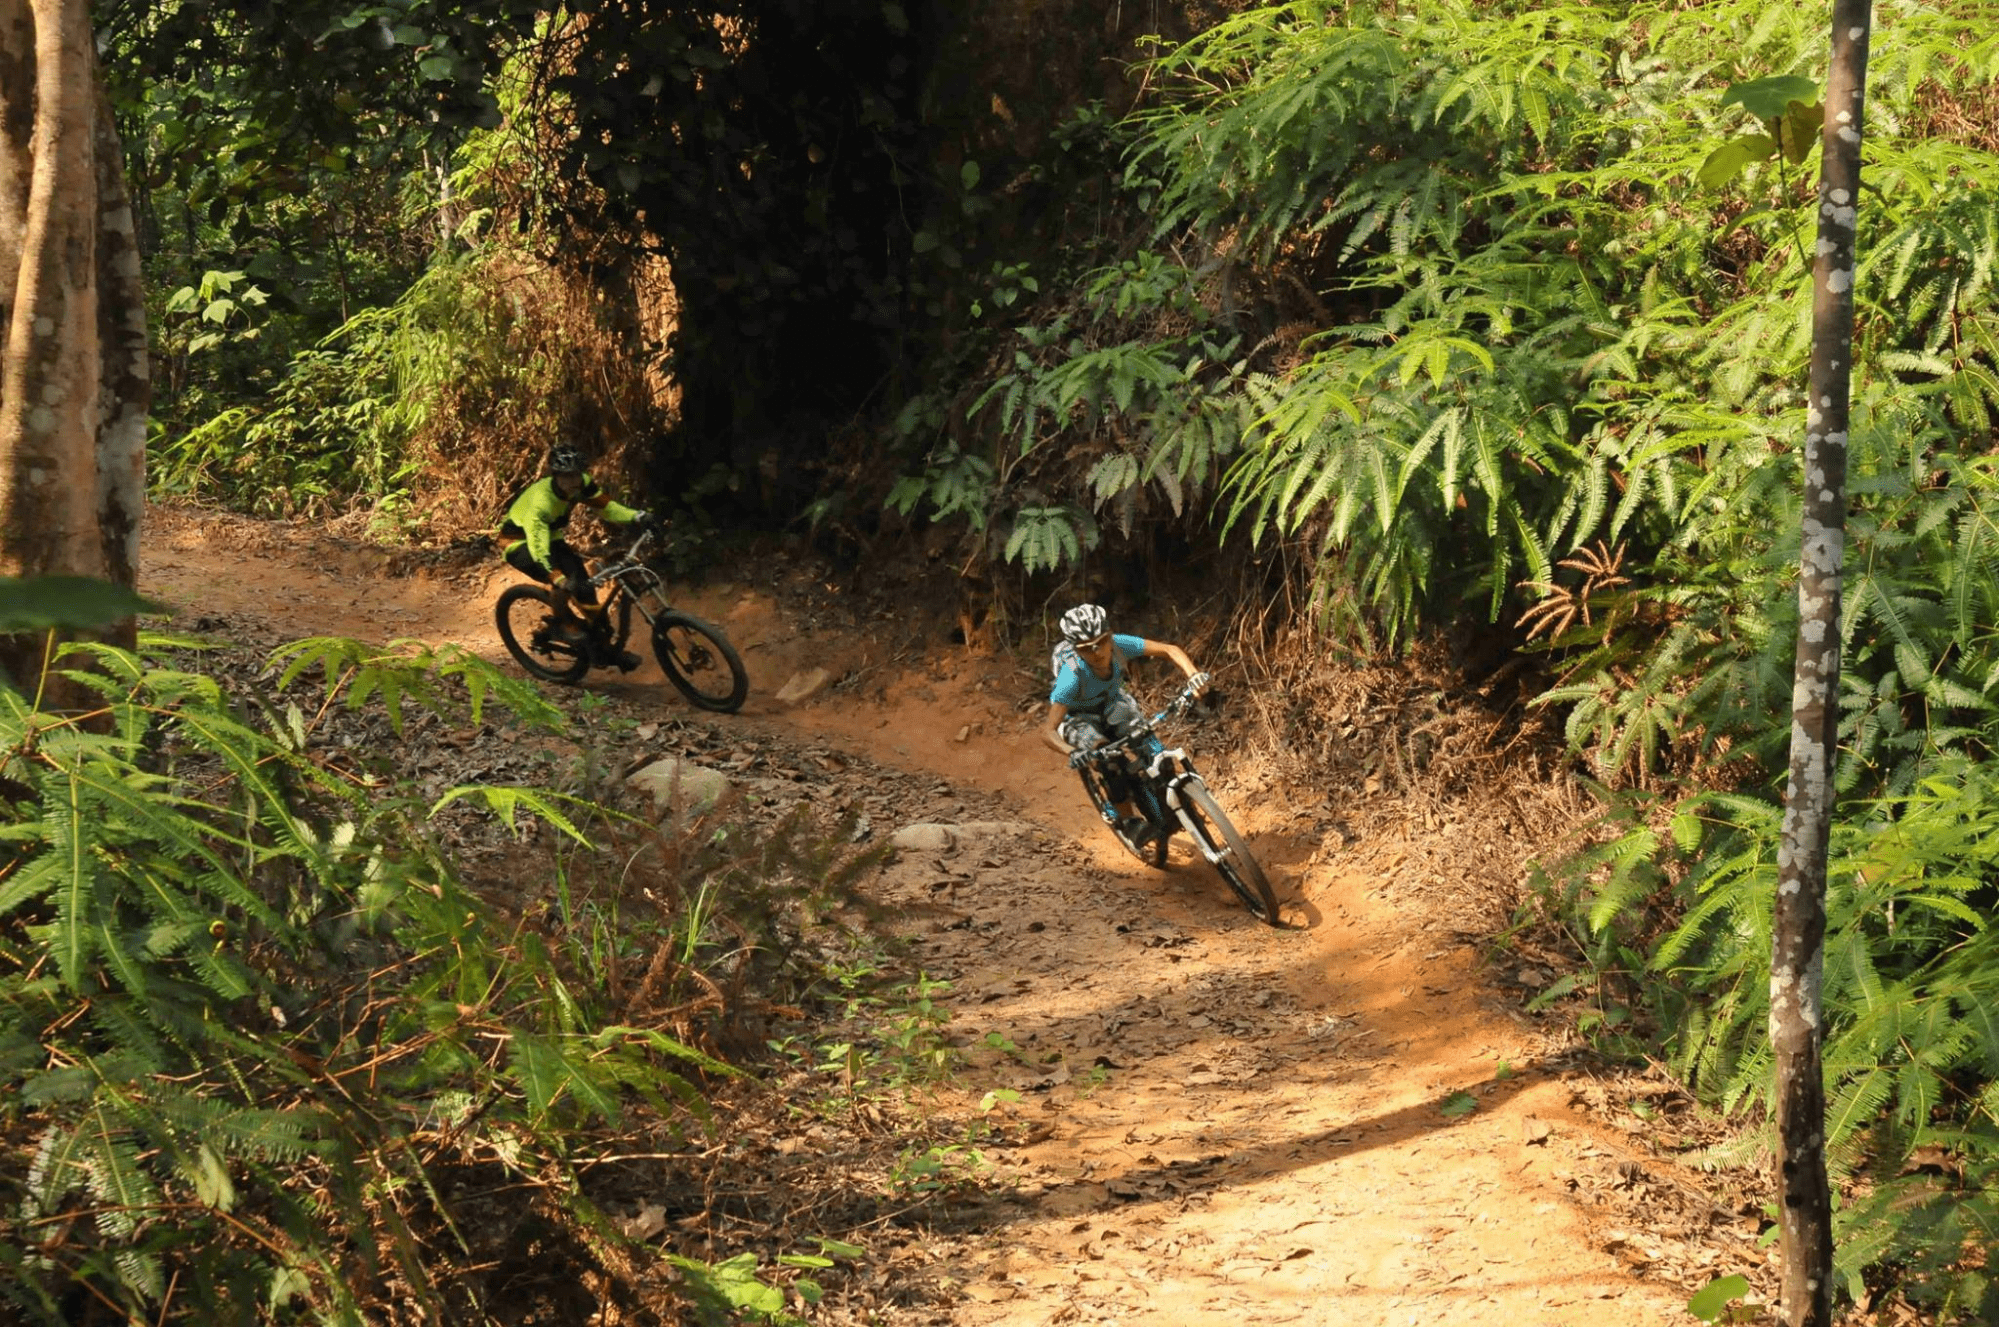 Mountain biking trails at chestnut nature park